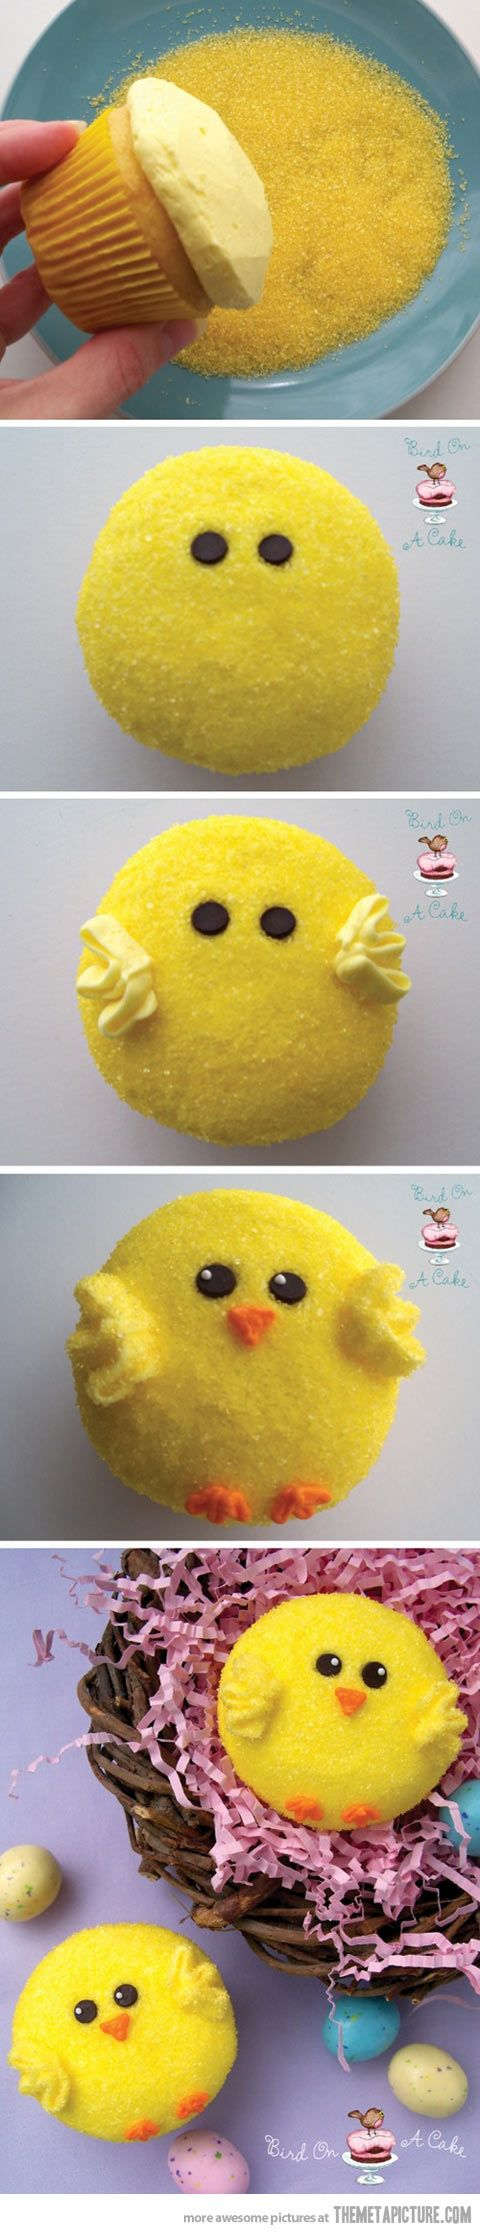 Cute little Easter cupcakes!